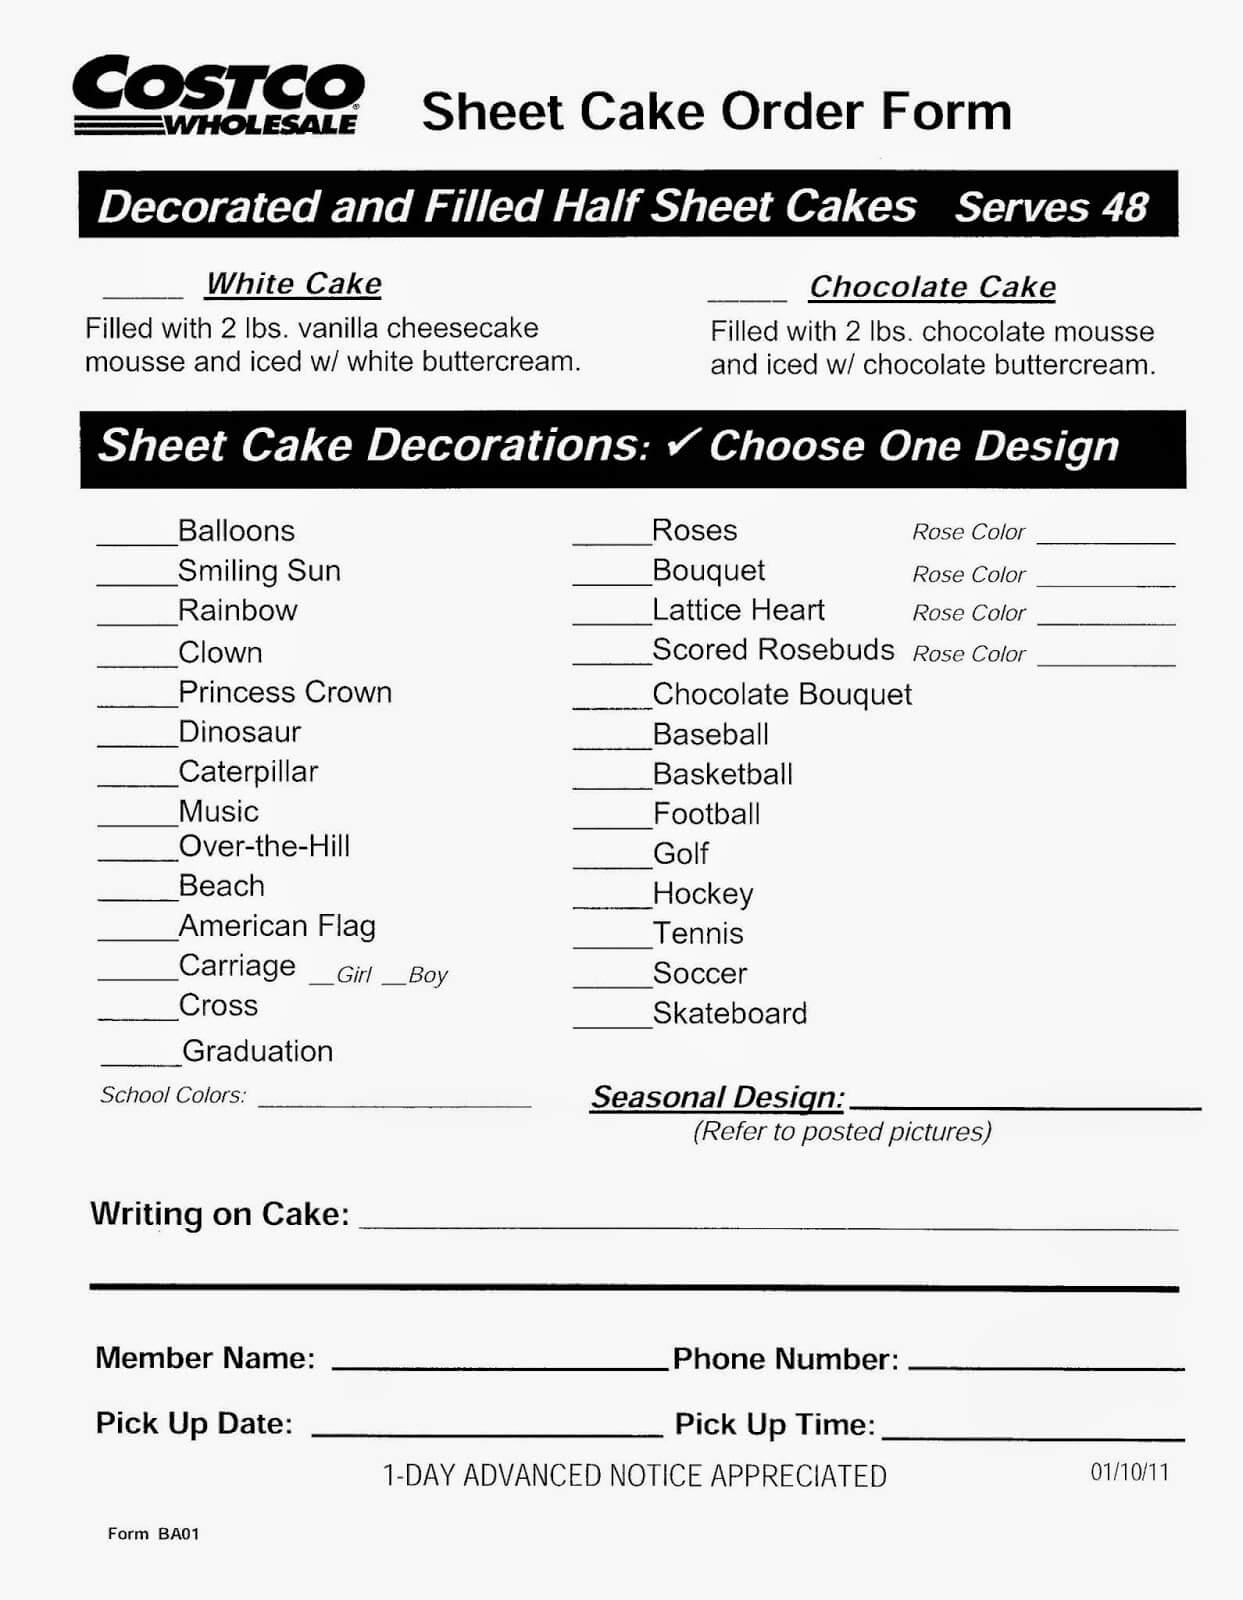 Costco Cake Order Form